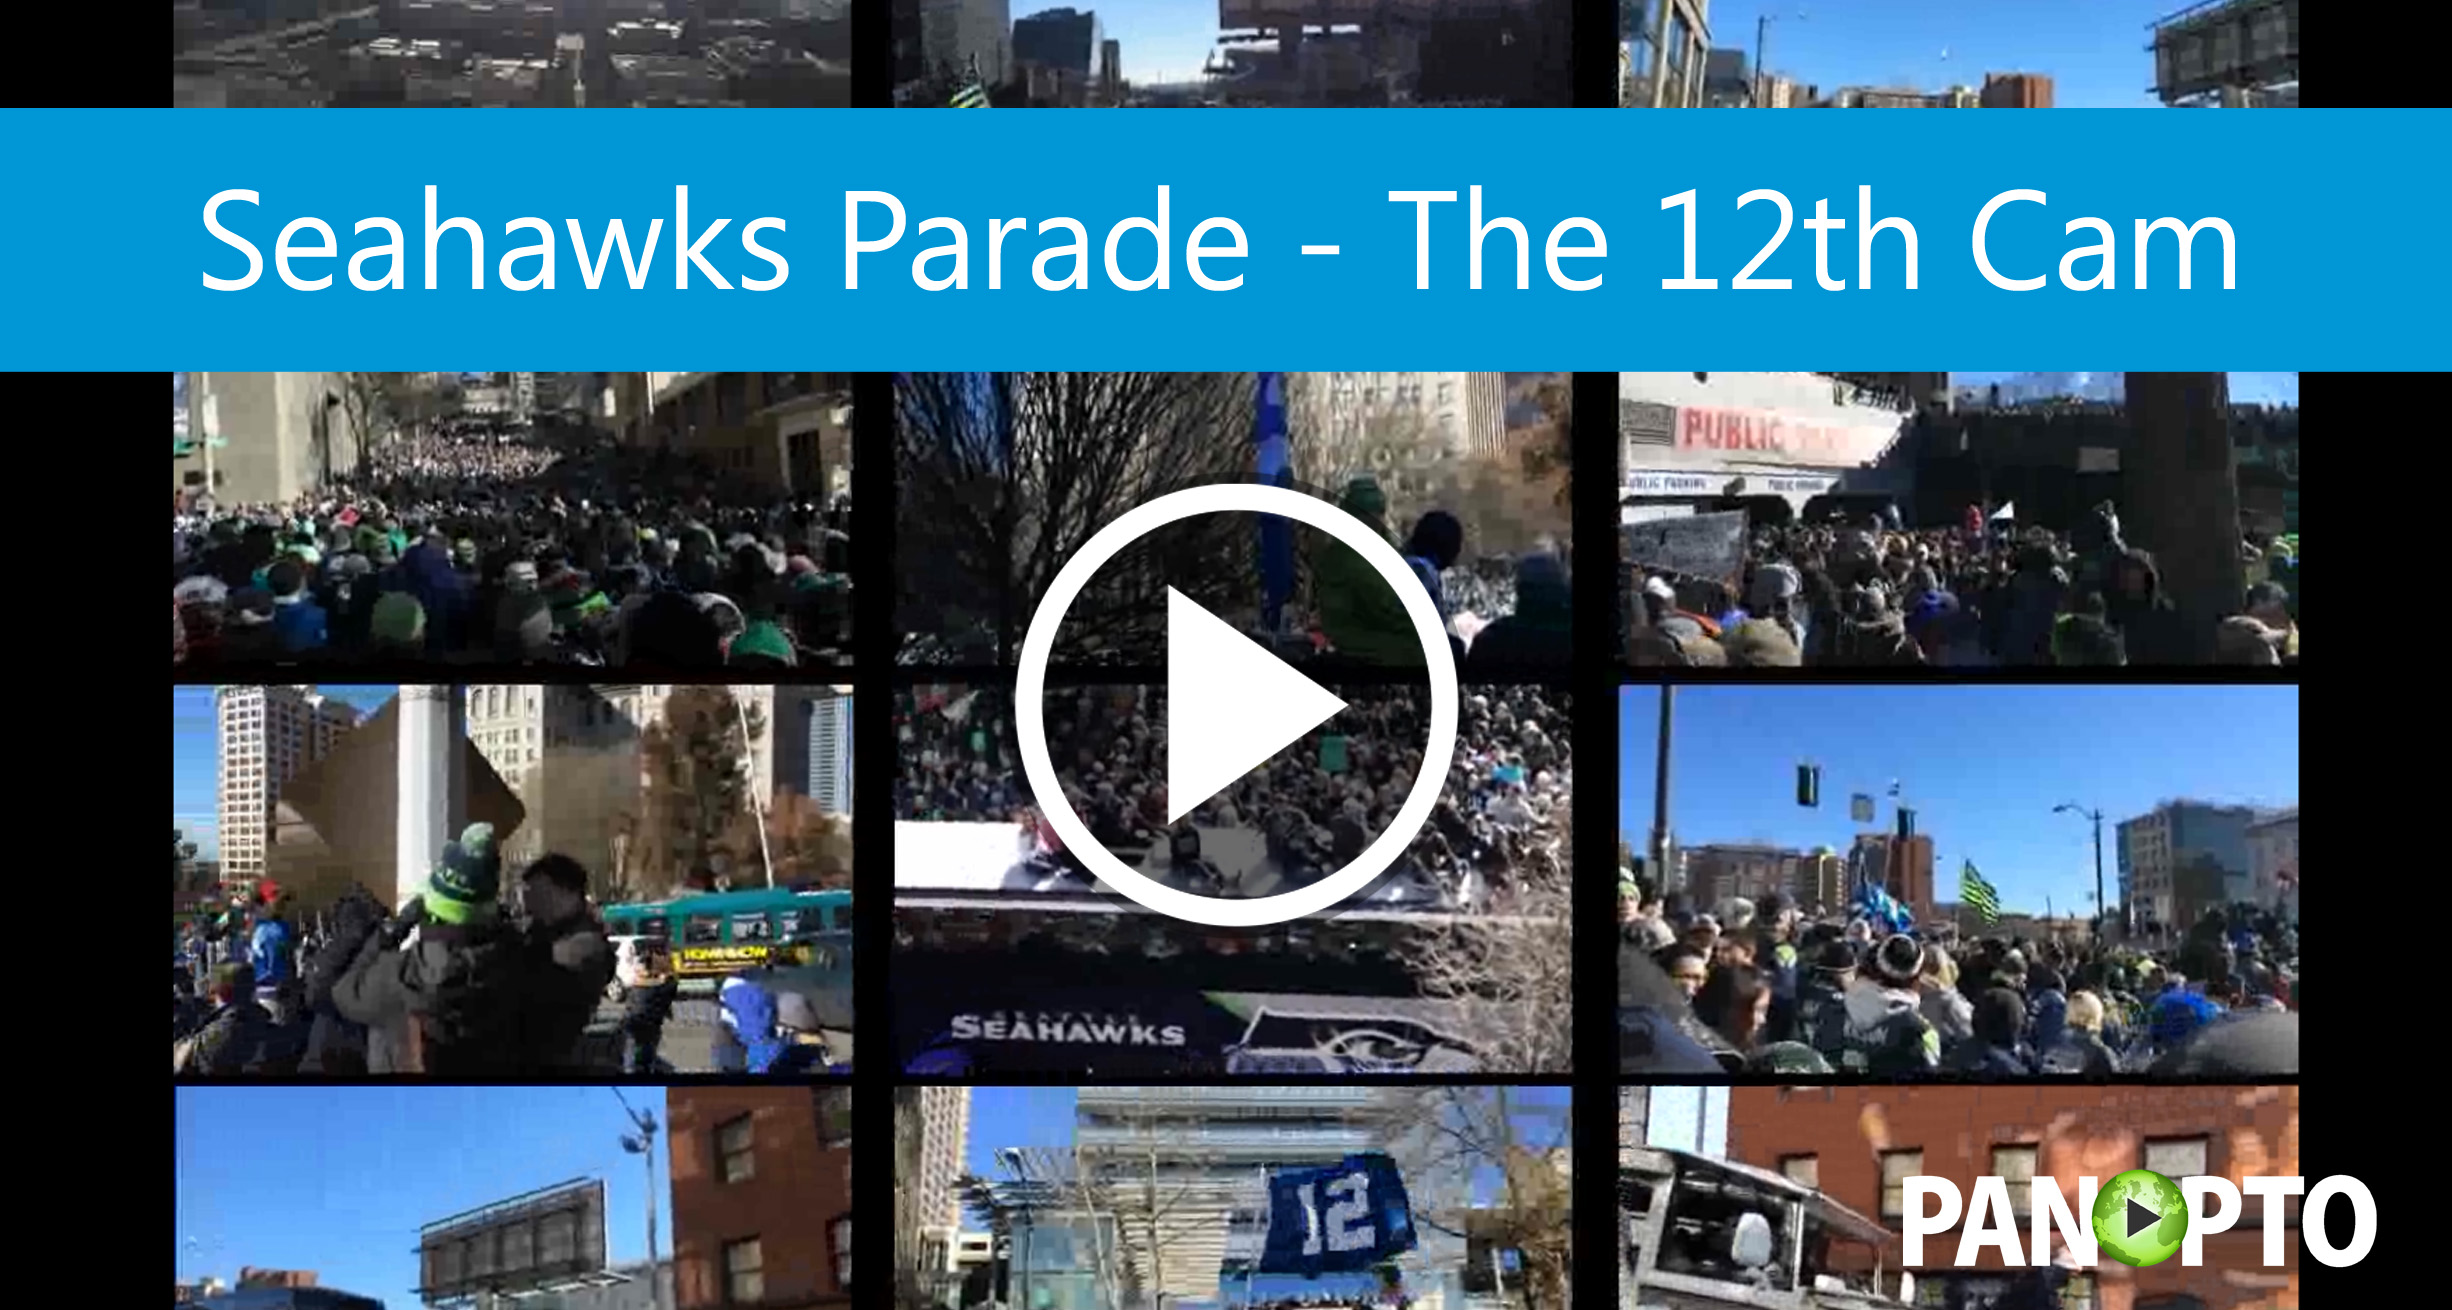 Seahawks Parade 12th Cam - Panopto Video Platform_0